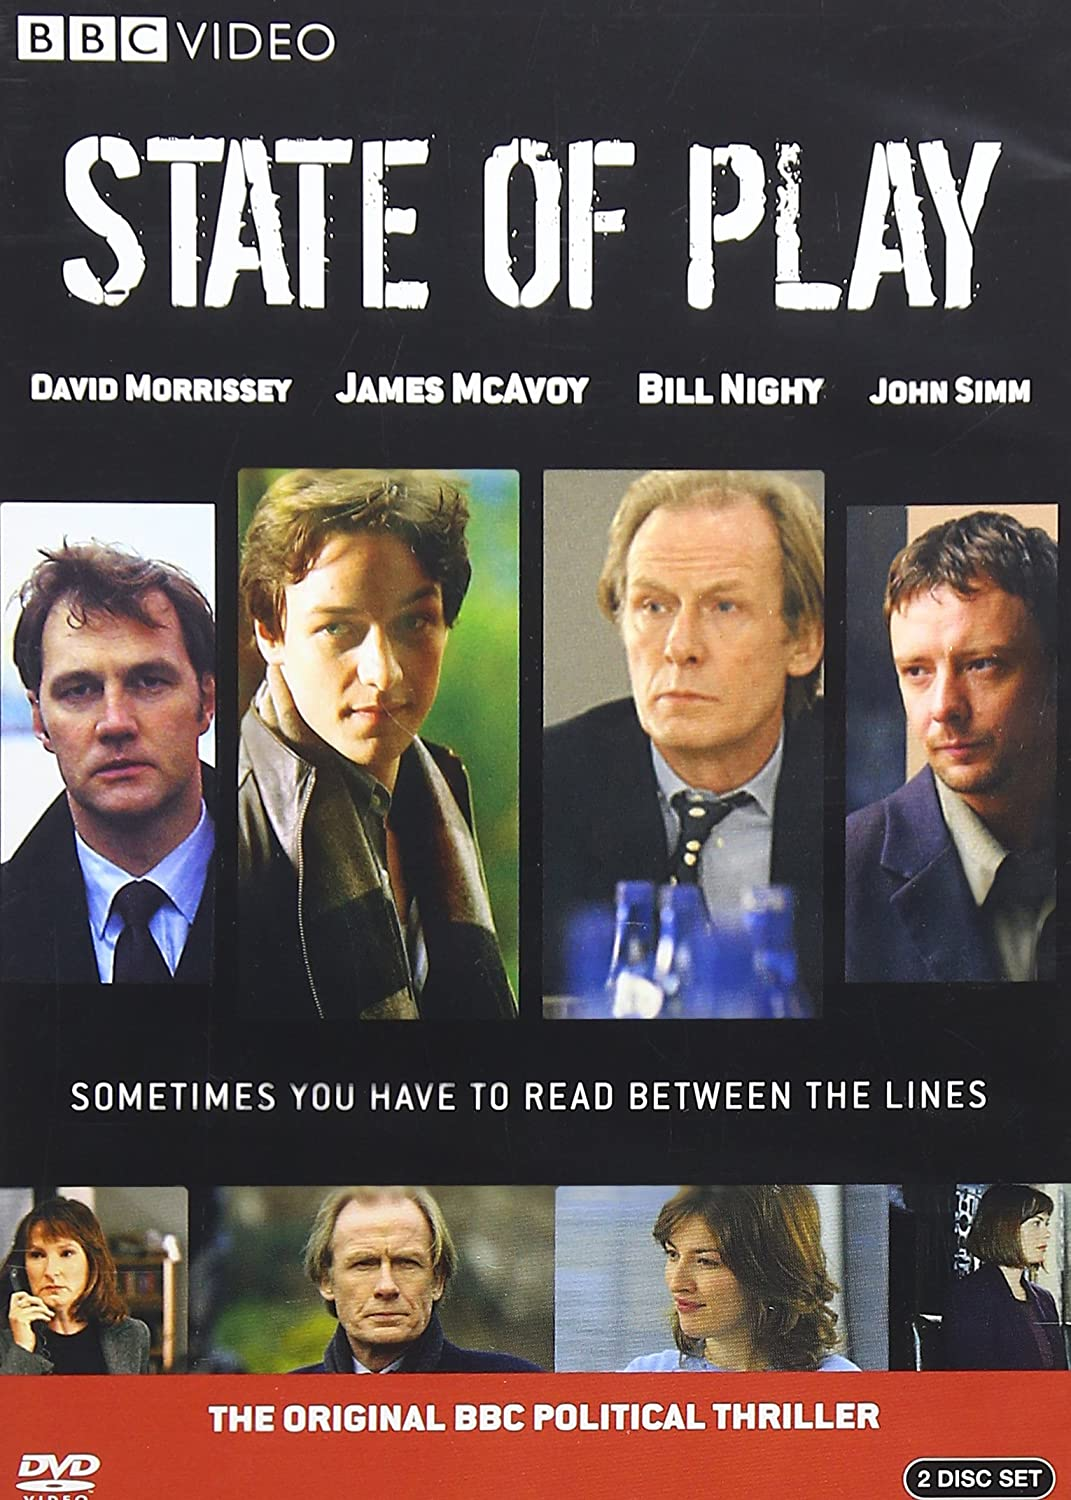 State of Play (BBC) Various BBC Home Entertainment 3341406 British TV